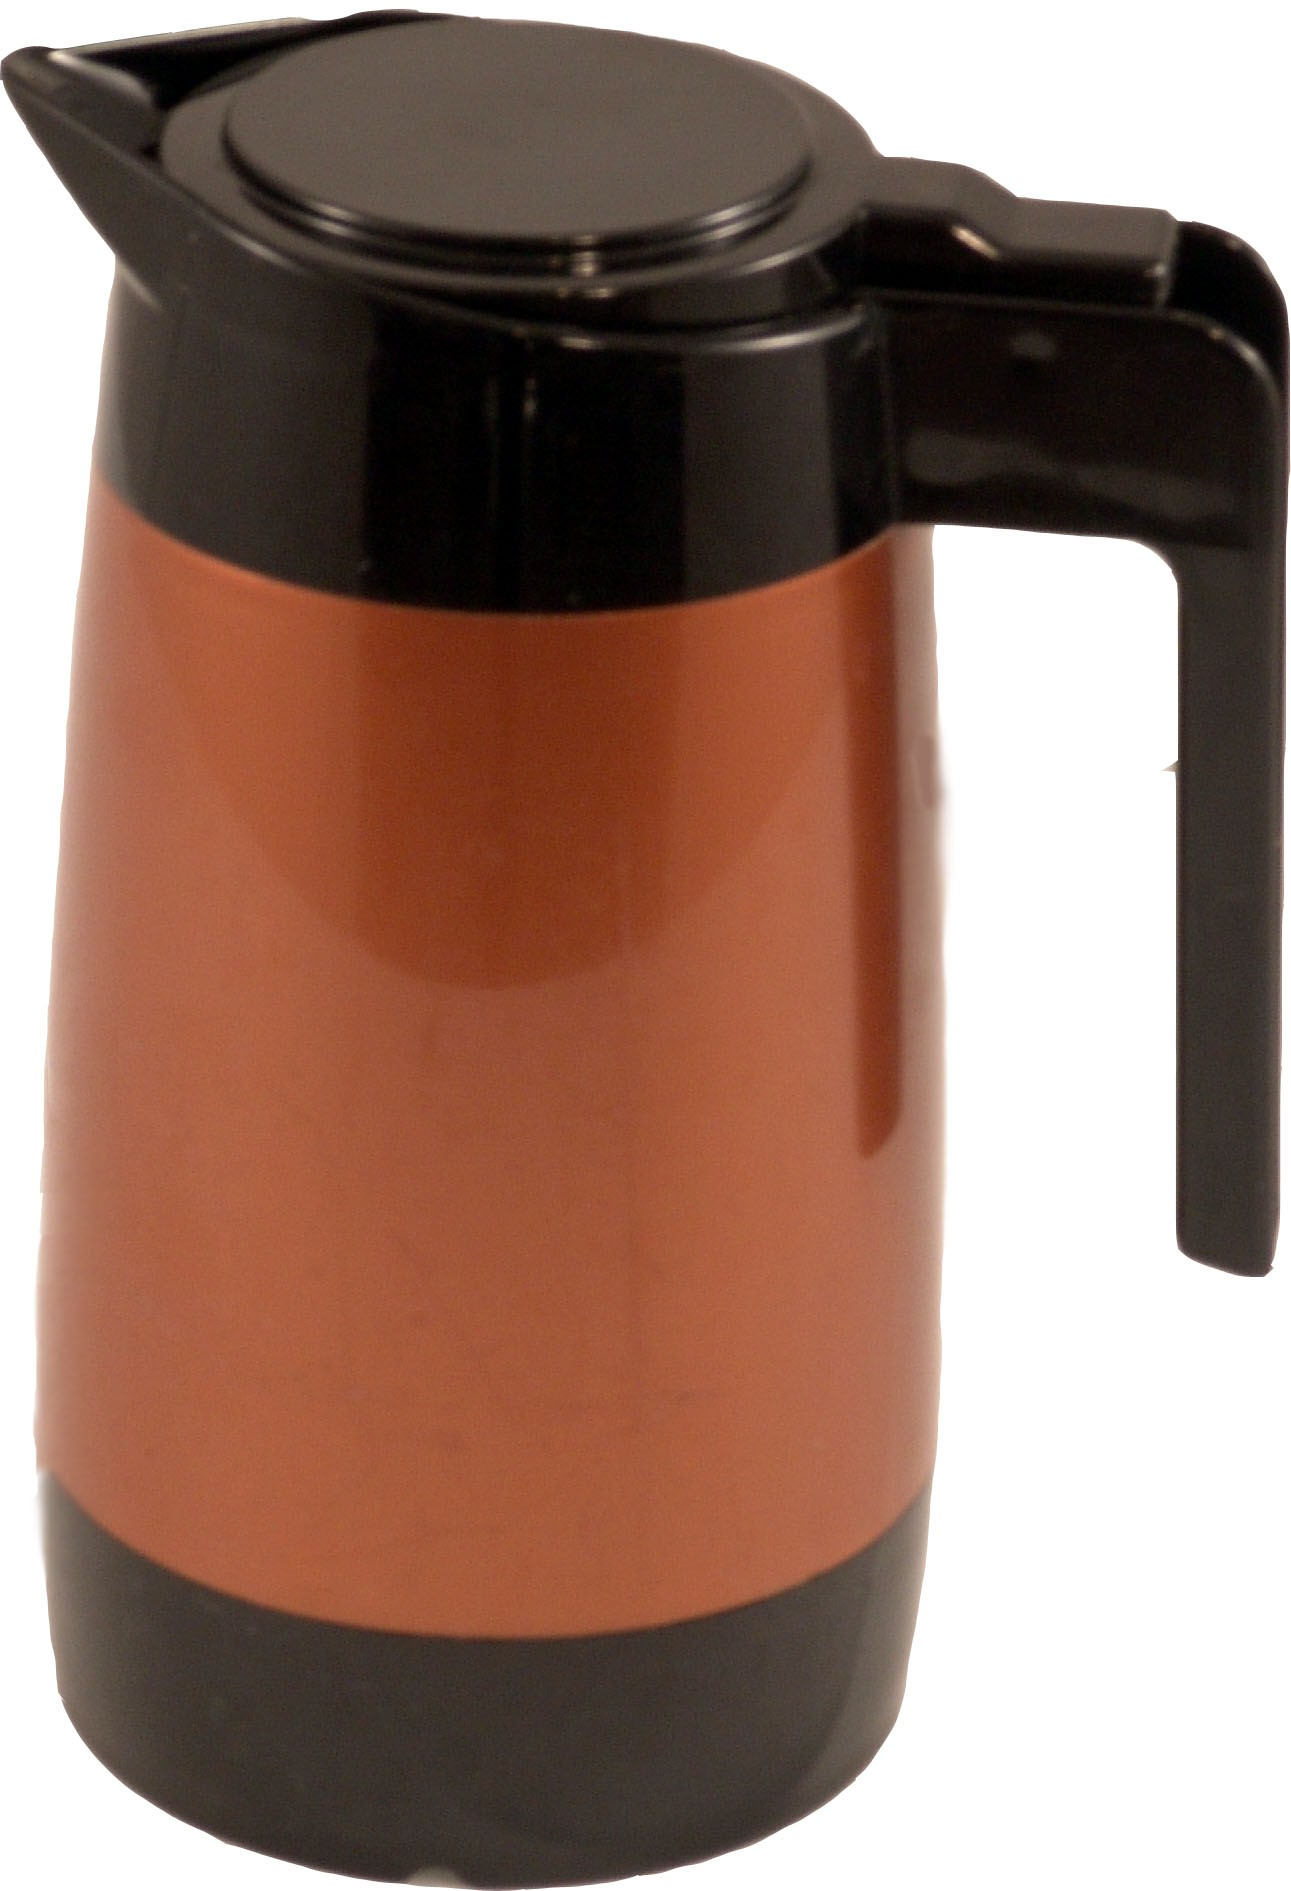 Beverage Server Pitcher - CE91 - (QTY: 200+)